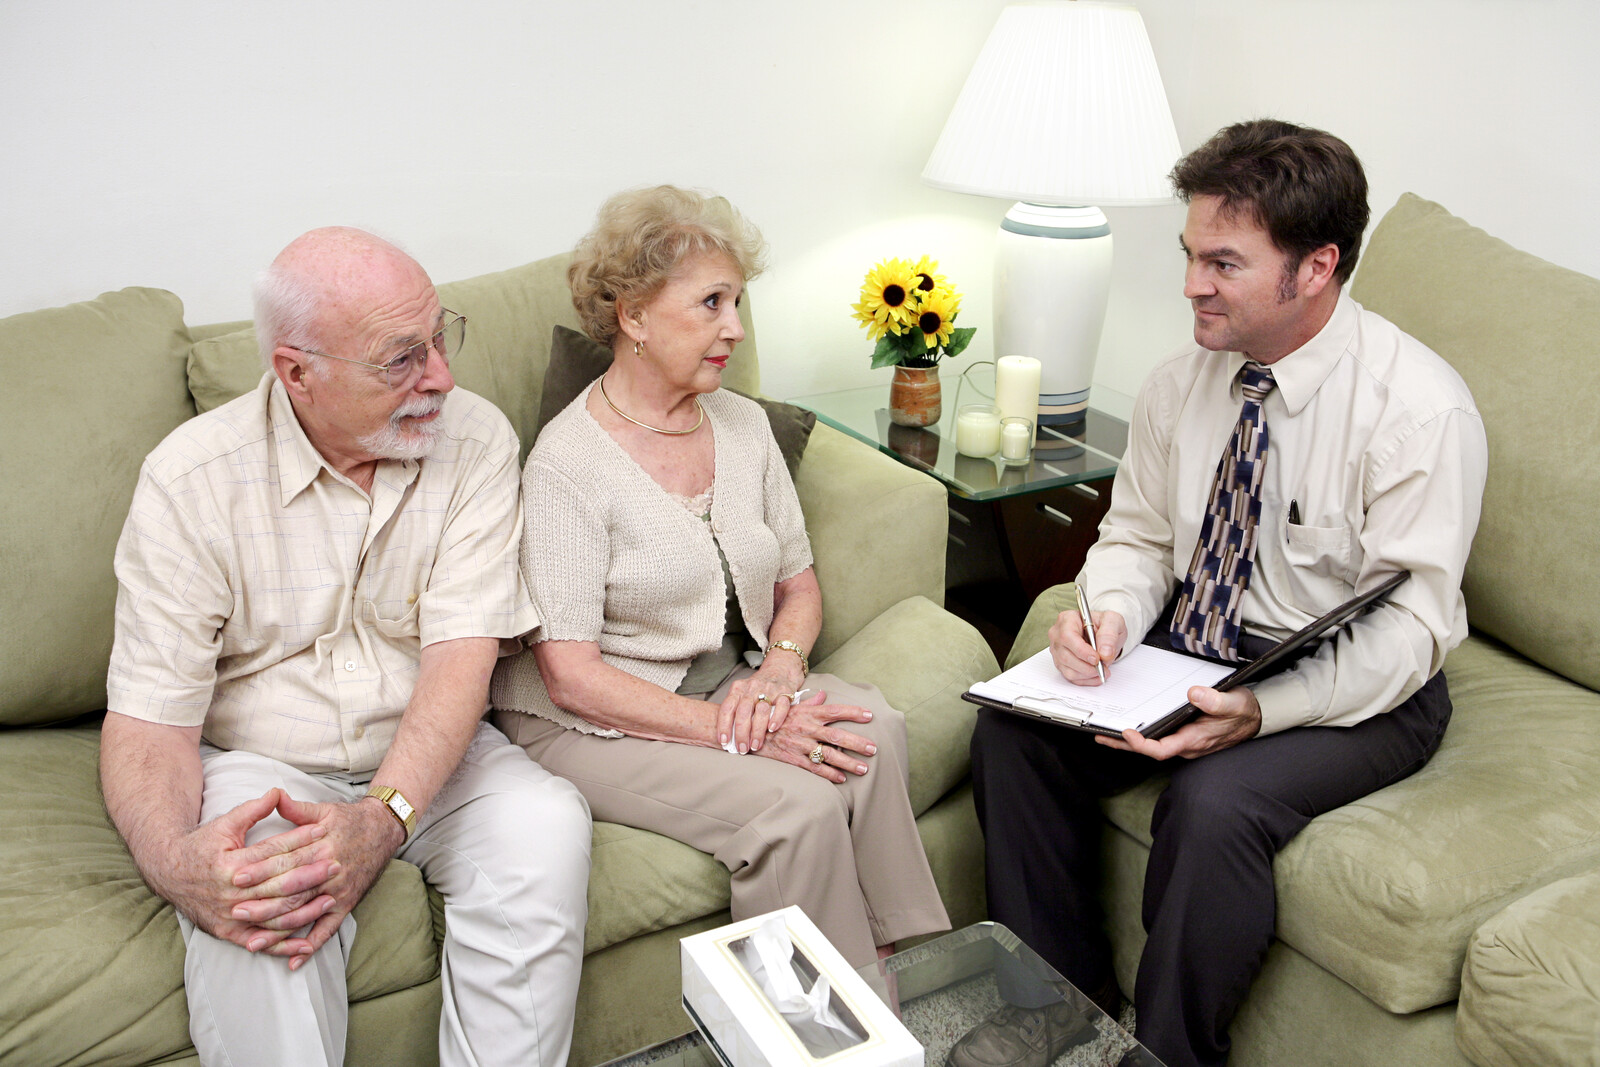 Salesman sitting on the couch across from two  seniors writing in his book, represents a shady sales person trying to sell an annuity contract